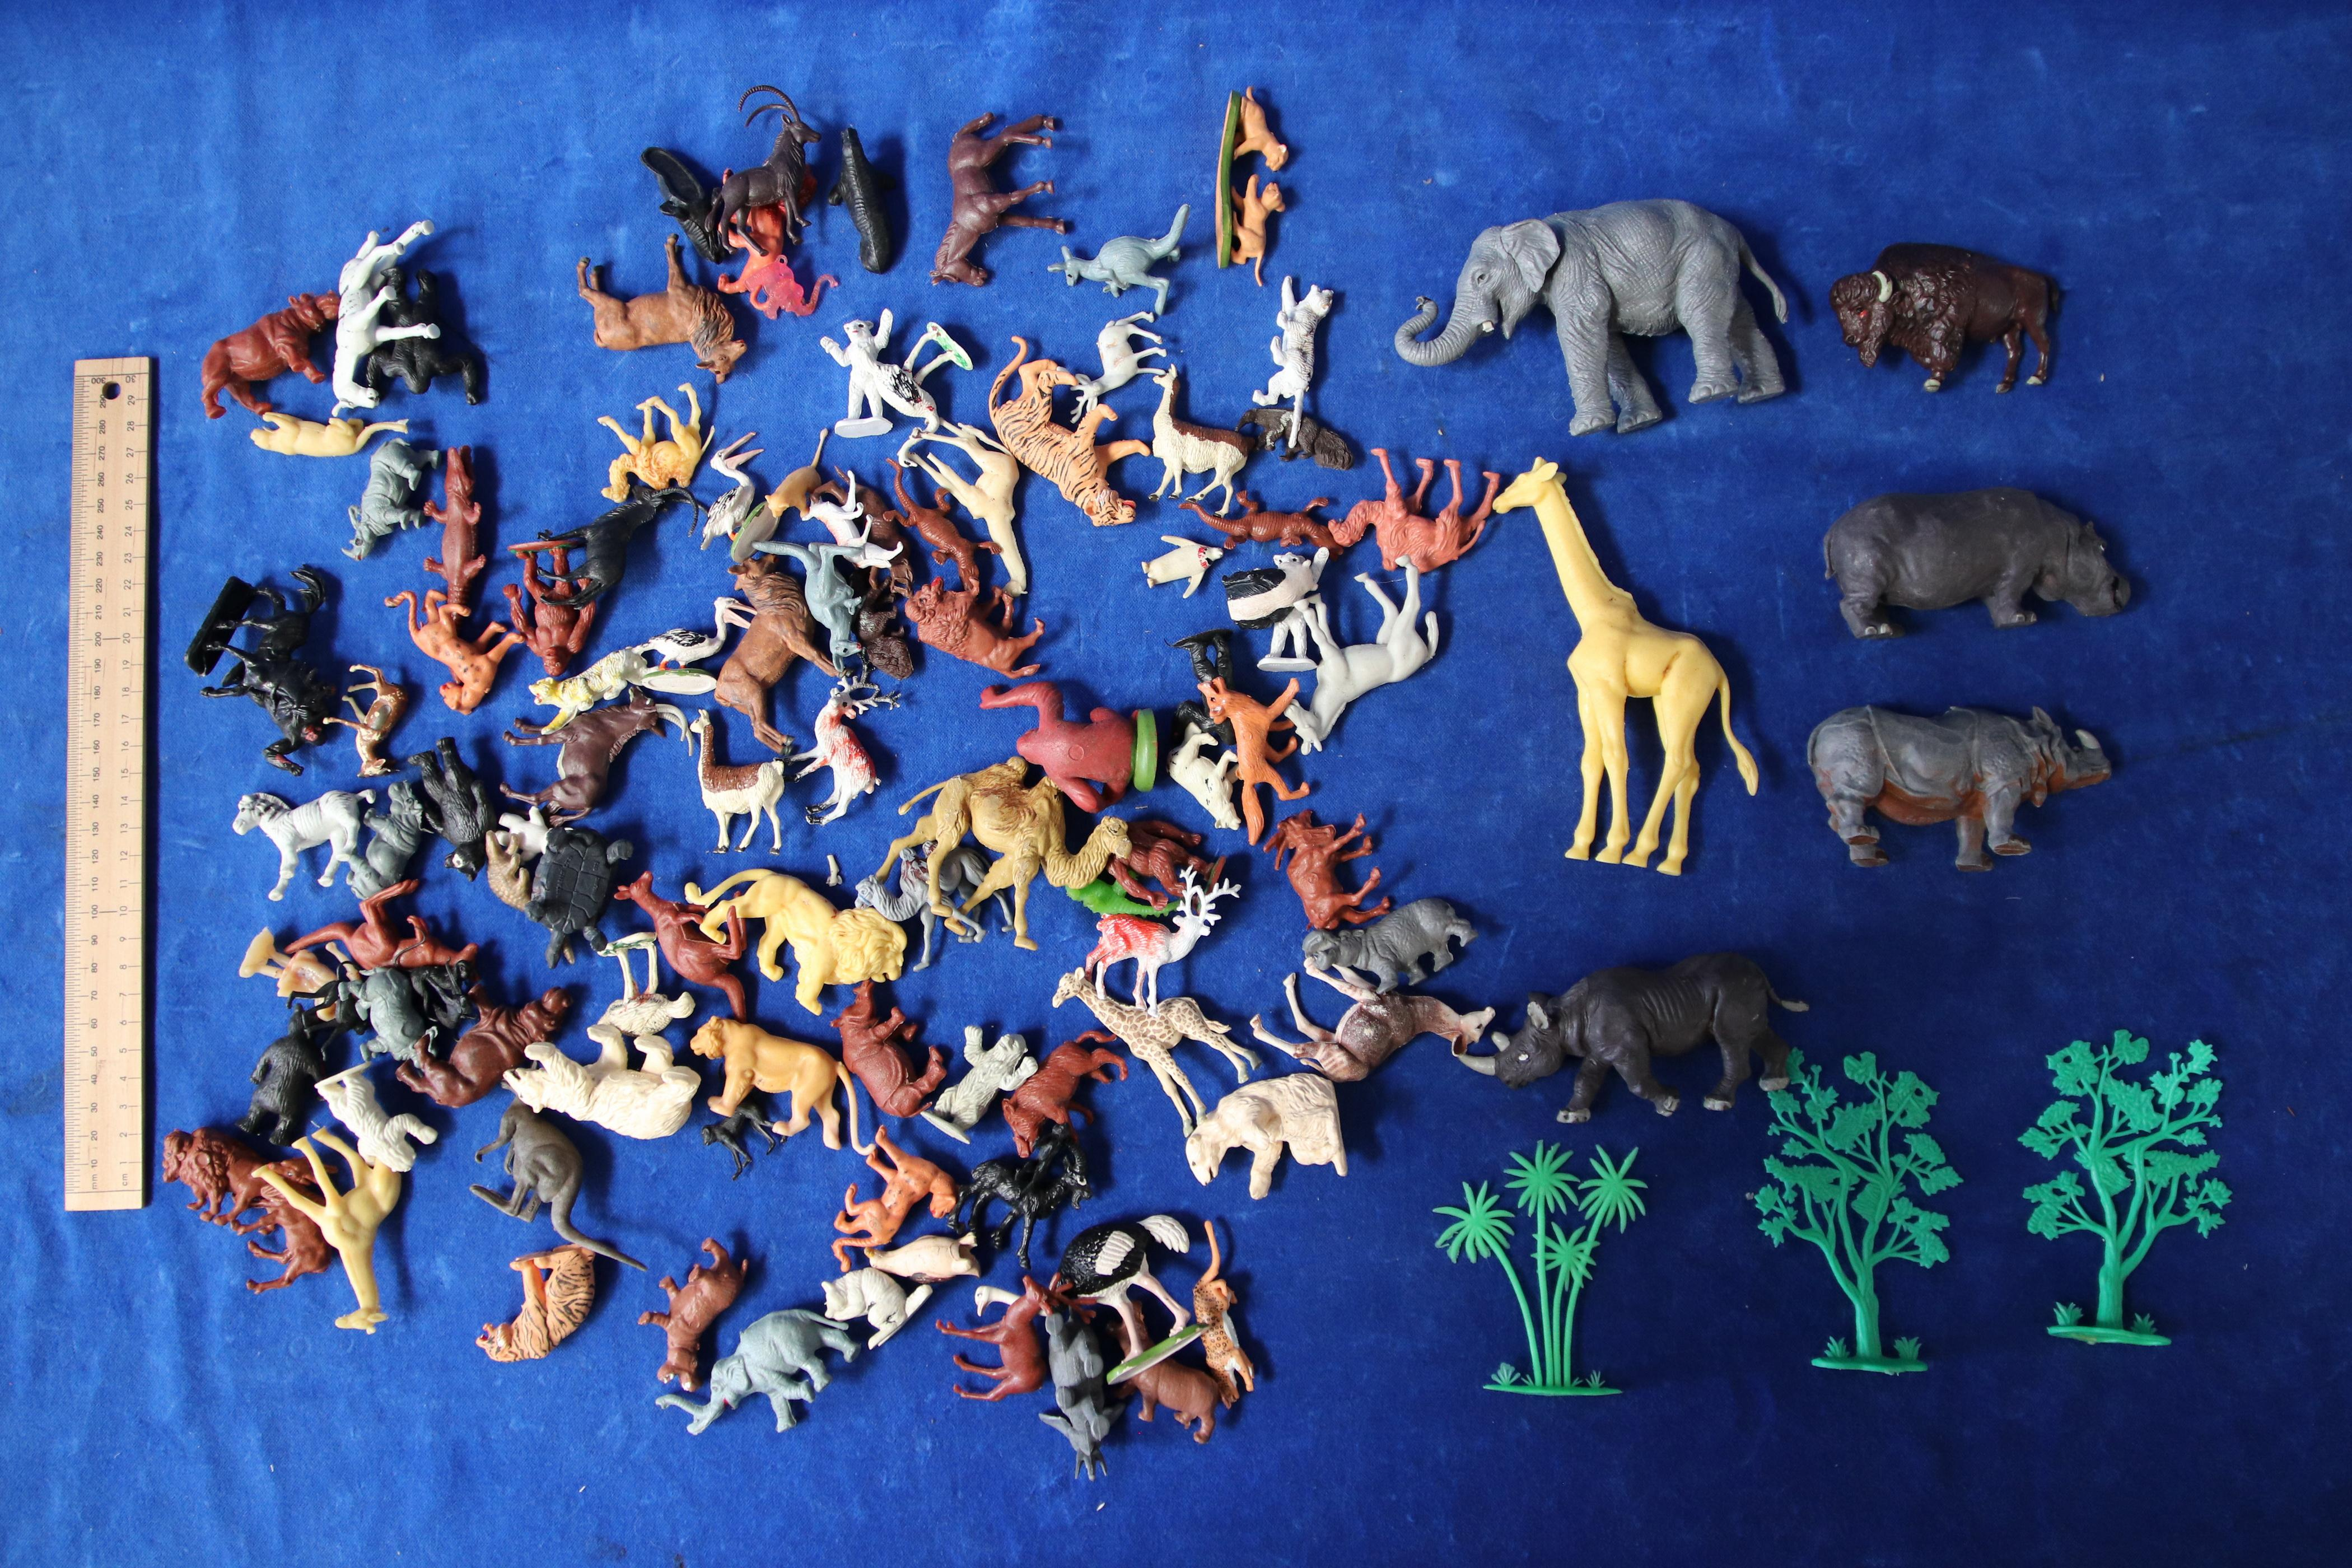 111 SMALL ZOO FIGURES AND 6 LARGER FIGURES